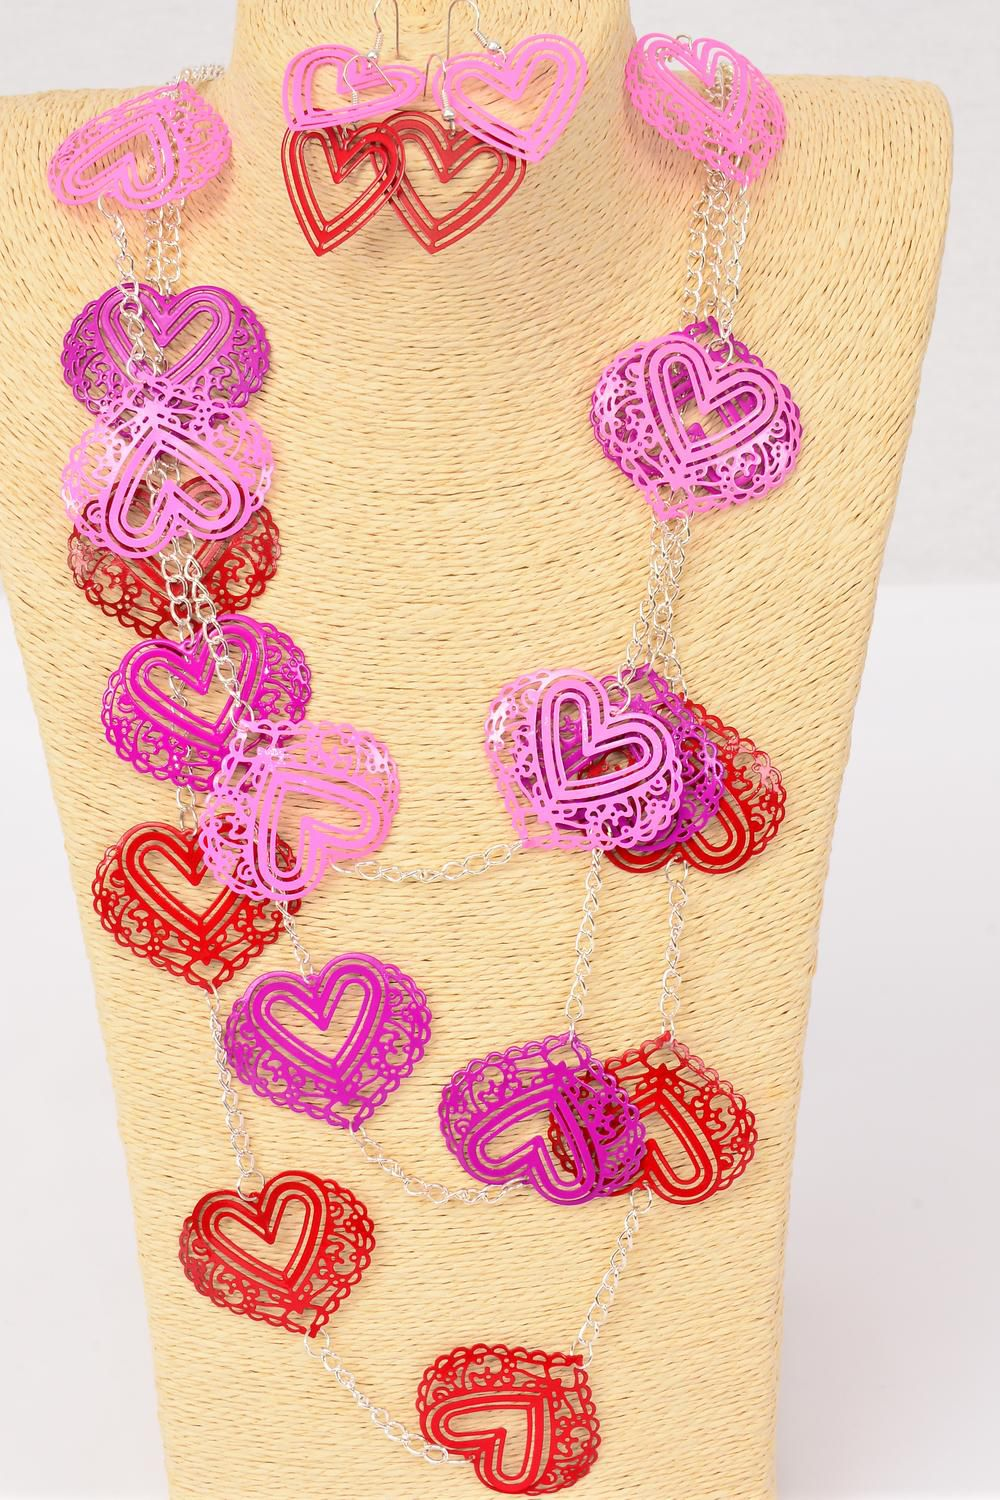 "Necklace Sets Bunch Color Filigree Hearts/DZ Size-42"" Long,6 Red,3 Fuchsia,3 Pink Mix,Hang tag & OPP bag & UPC Code -"